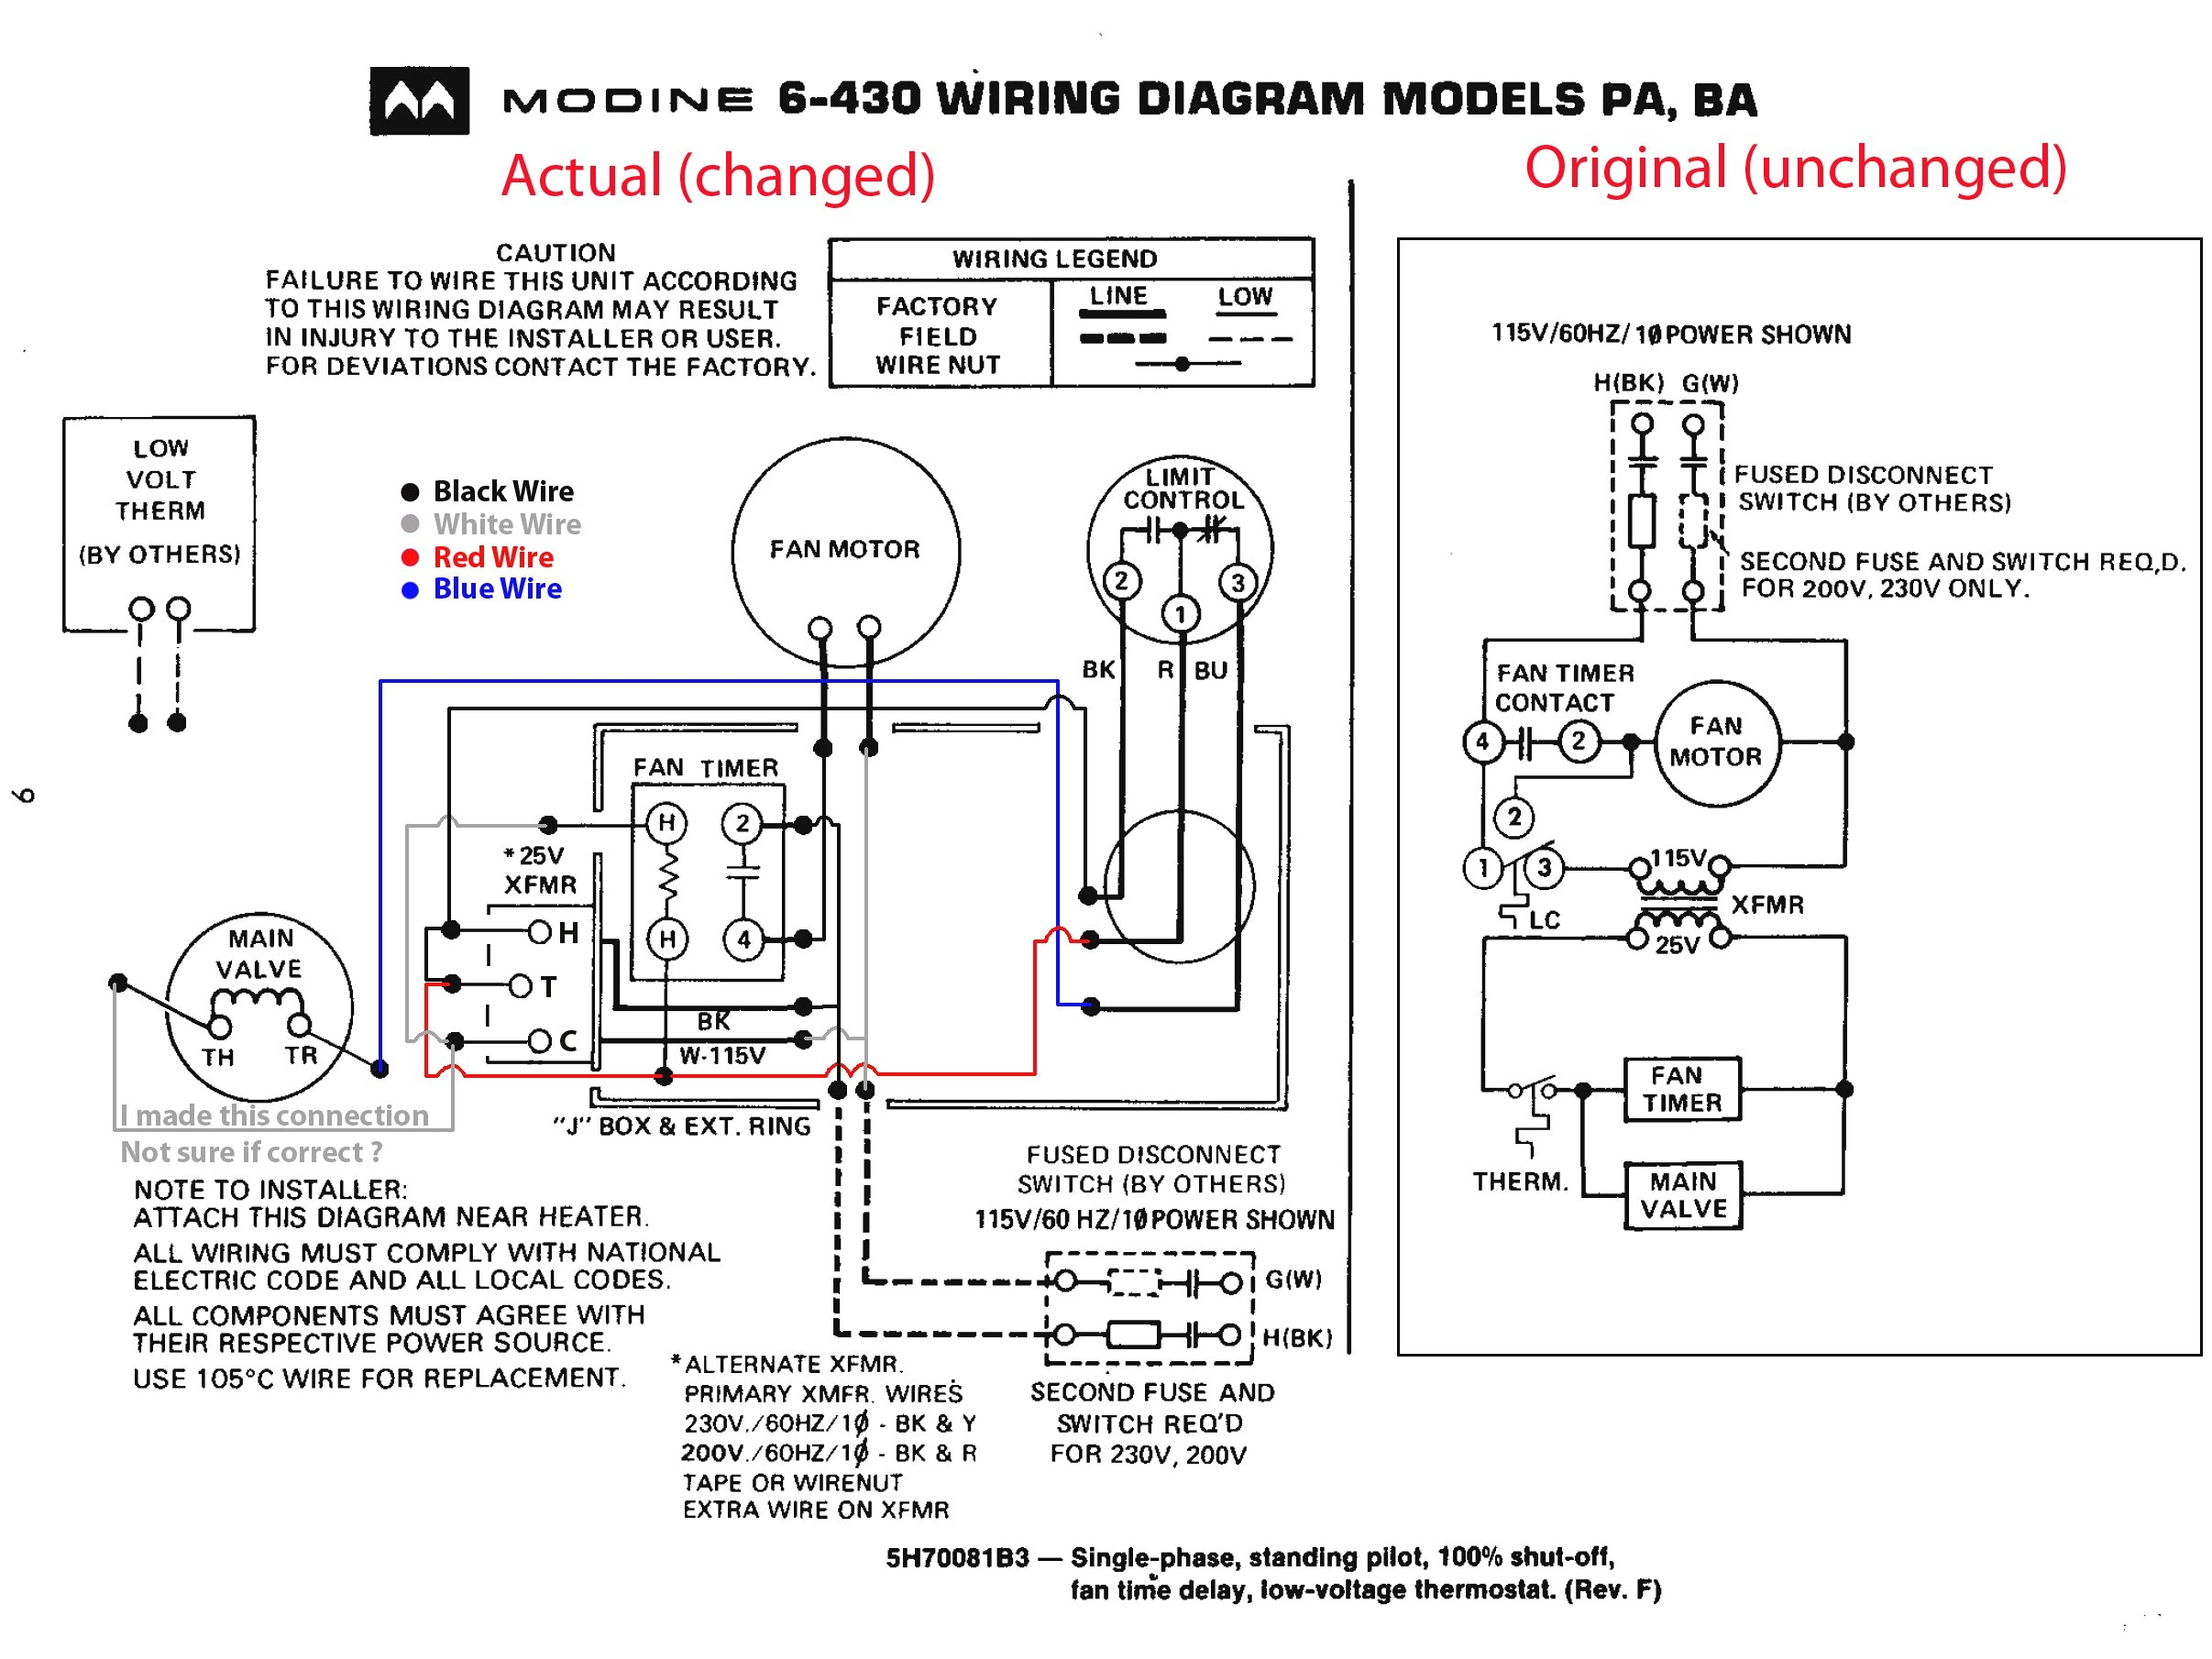 atwood furnace wiring diagram Collection-Wiring Diagram for Rv Furnace Fresh Wonderful atwood Furnace Wiring Diagram Rv Heater In Webtor Me 11-j